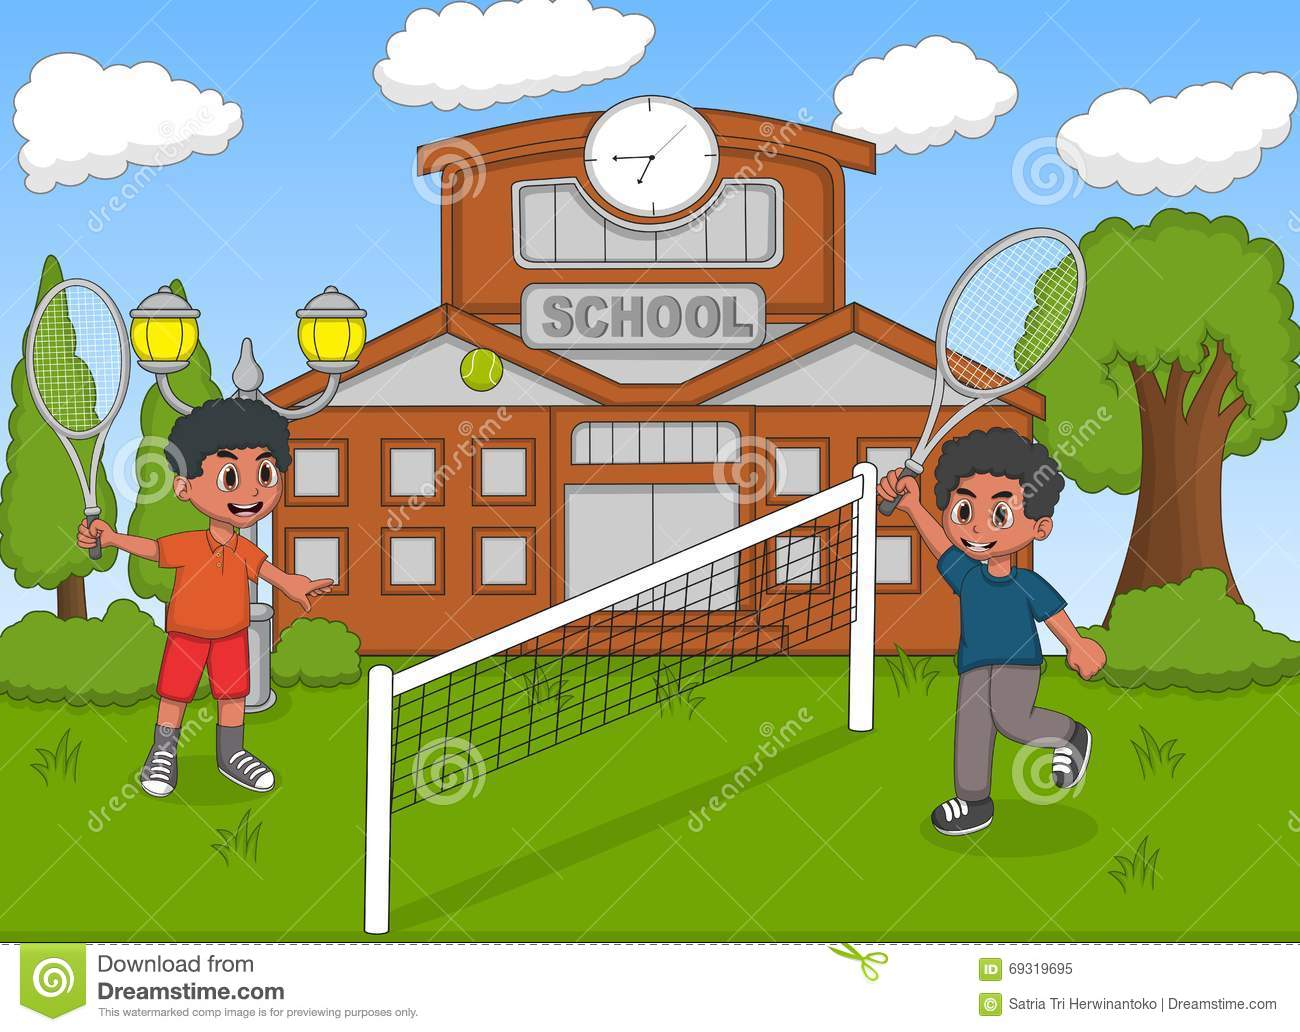 Children playing tennis in front of school cartoon stock vector illustration of house park - Houses for families withchild ...